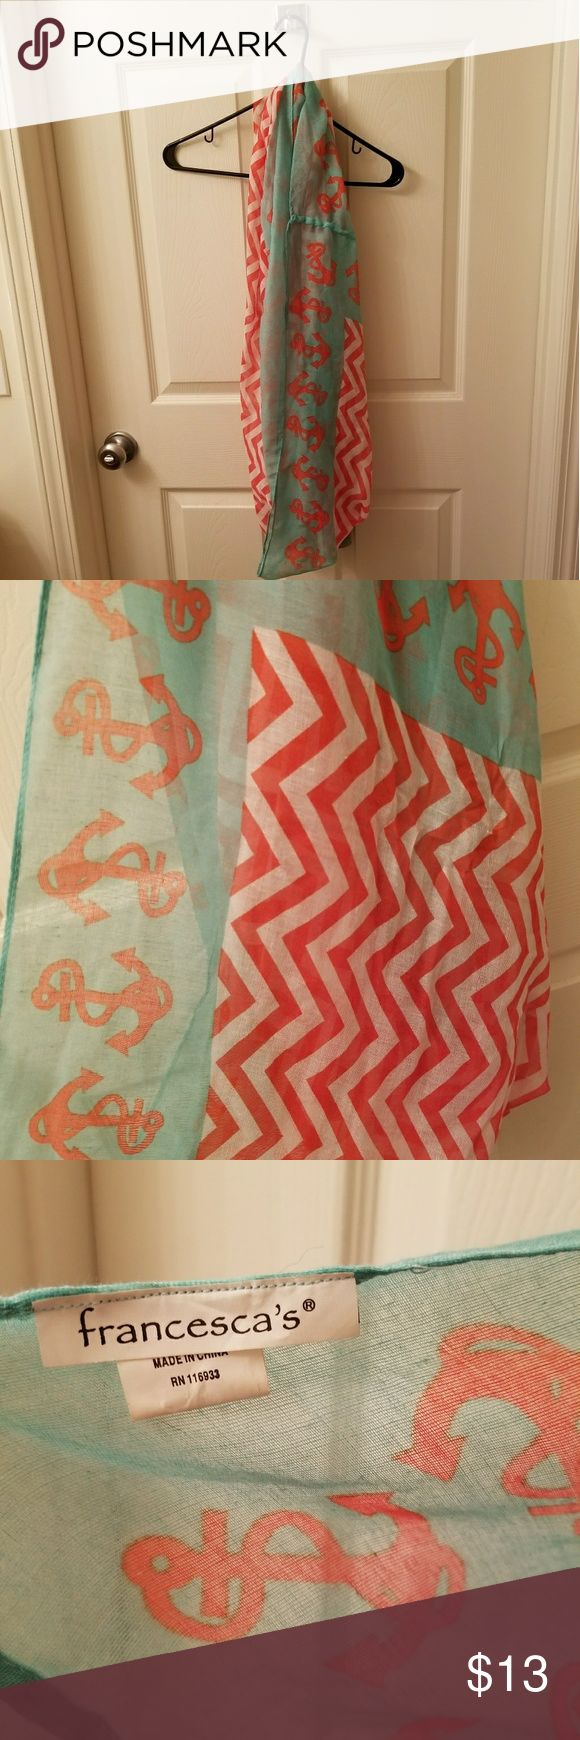 Preppy Anchor Scarf! Perfect for Delta Gammas! Preppy chevron and anchor print infinity scarf! Super cute! Never worn! Francesca's Collections Accessories Scarves & Wraps